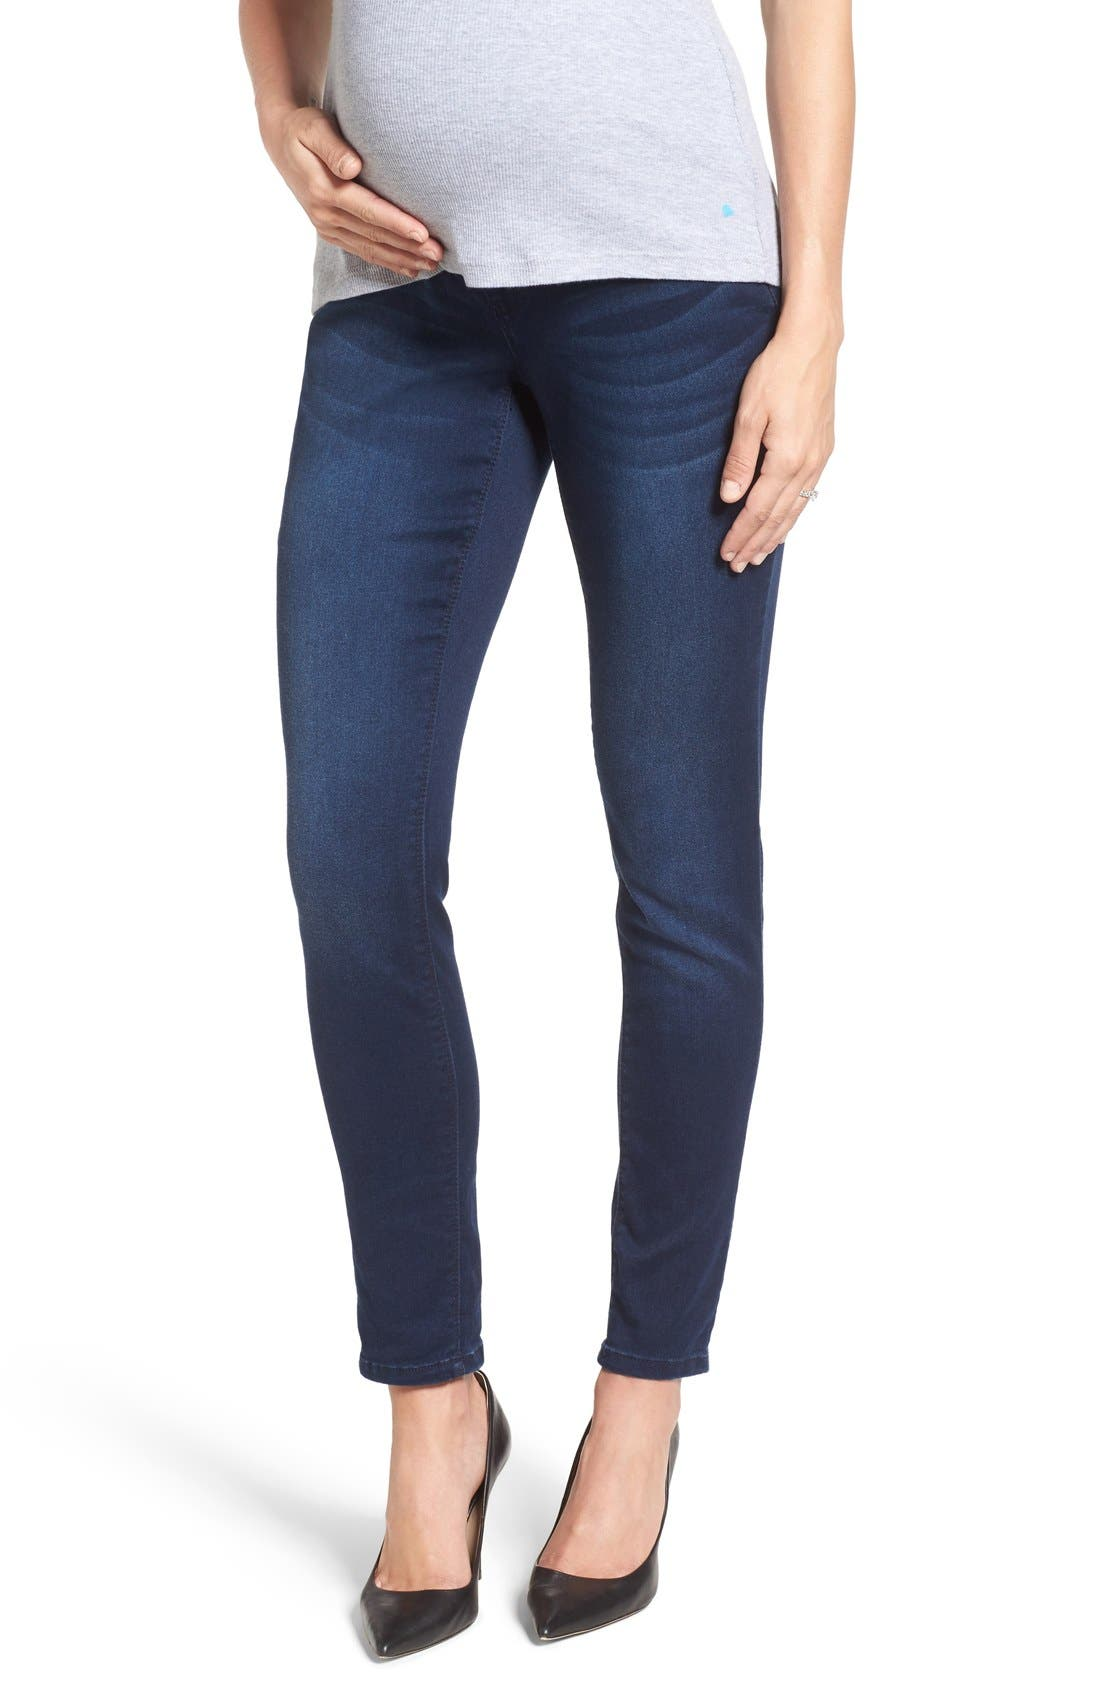 Main Image - 1822 Denim 'Ankle Biter' Over the Bump Rolled Cuff Maternity Skinny Jeans